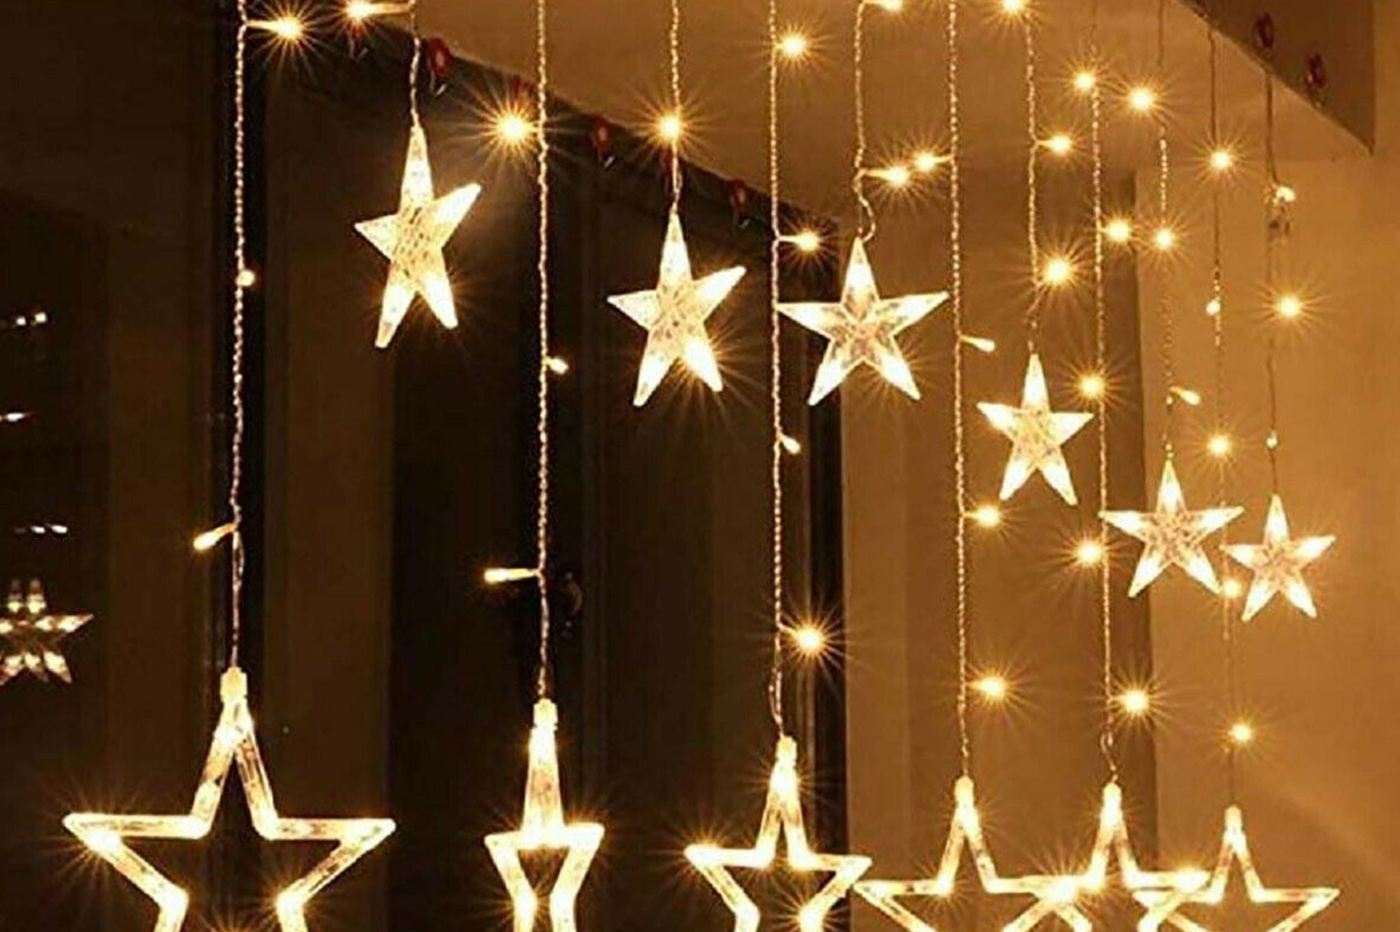 Luci di natale catena led stelle luce naturale luminose tenda luminosa decori